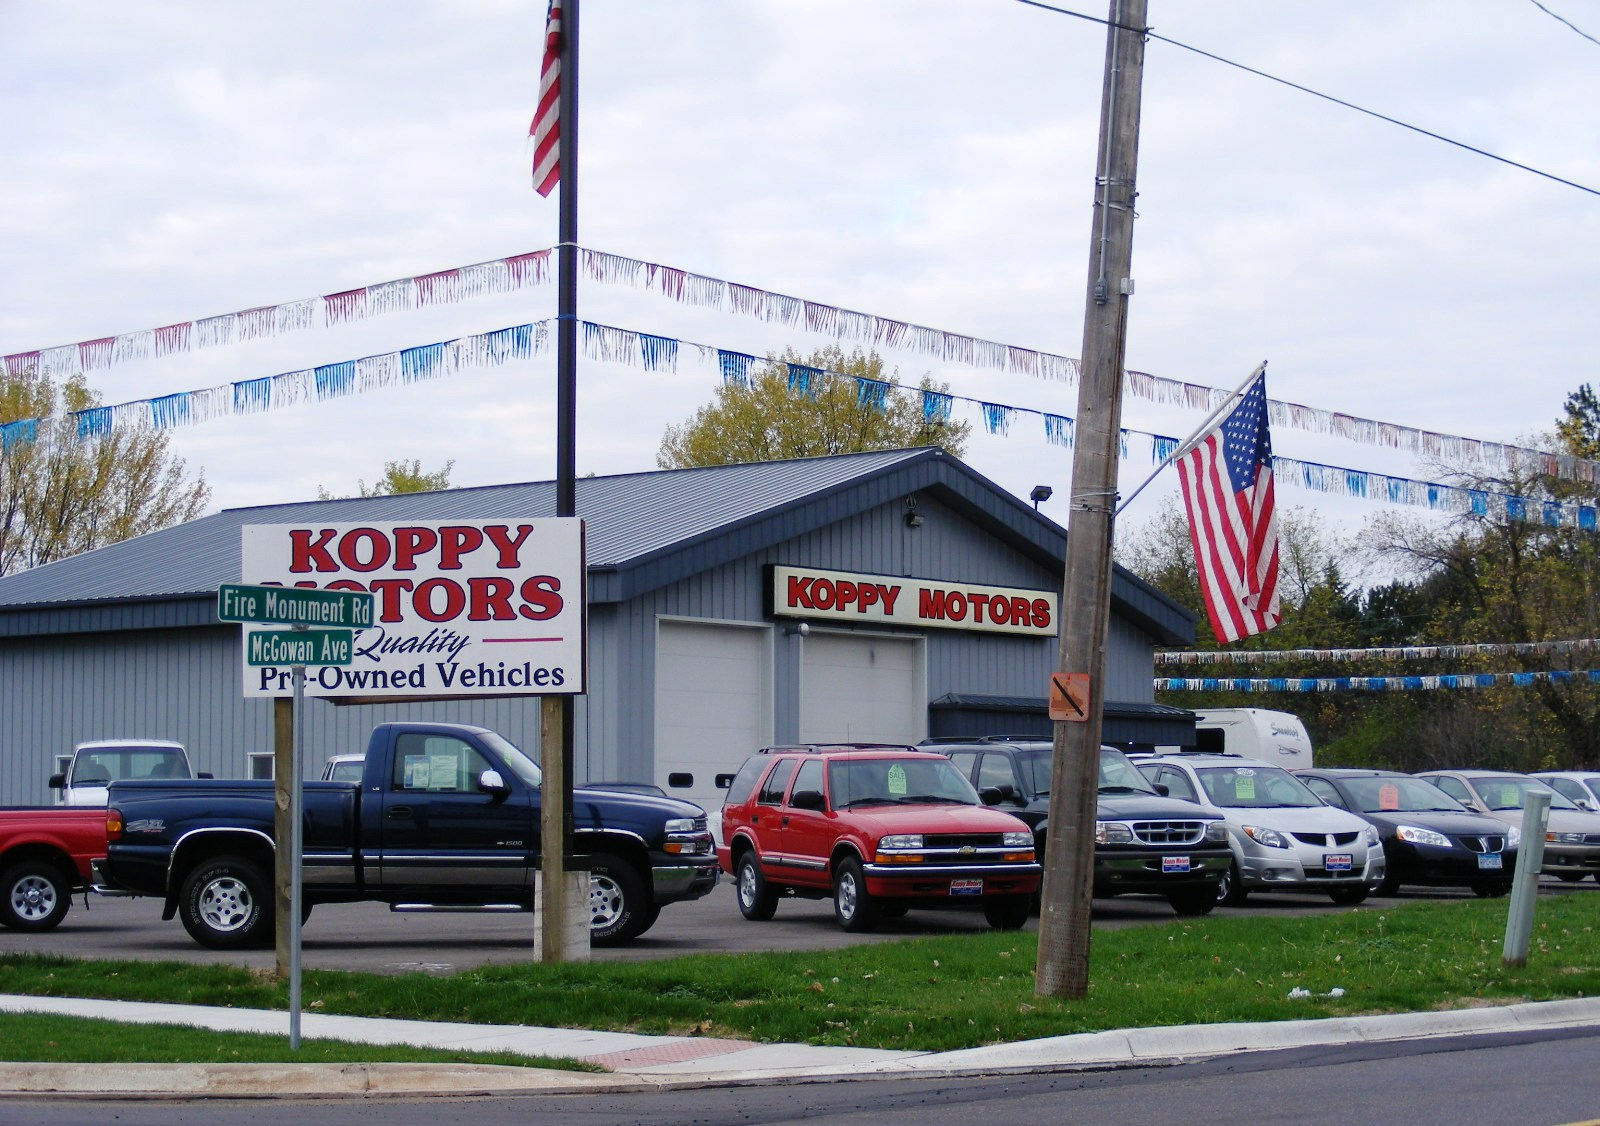 Guide to hinckley minnesota for Koppy motors of hinckley